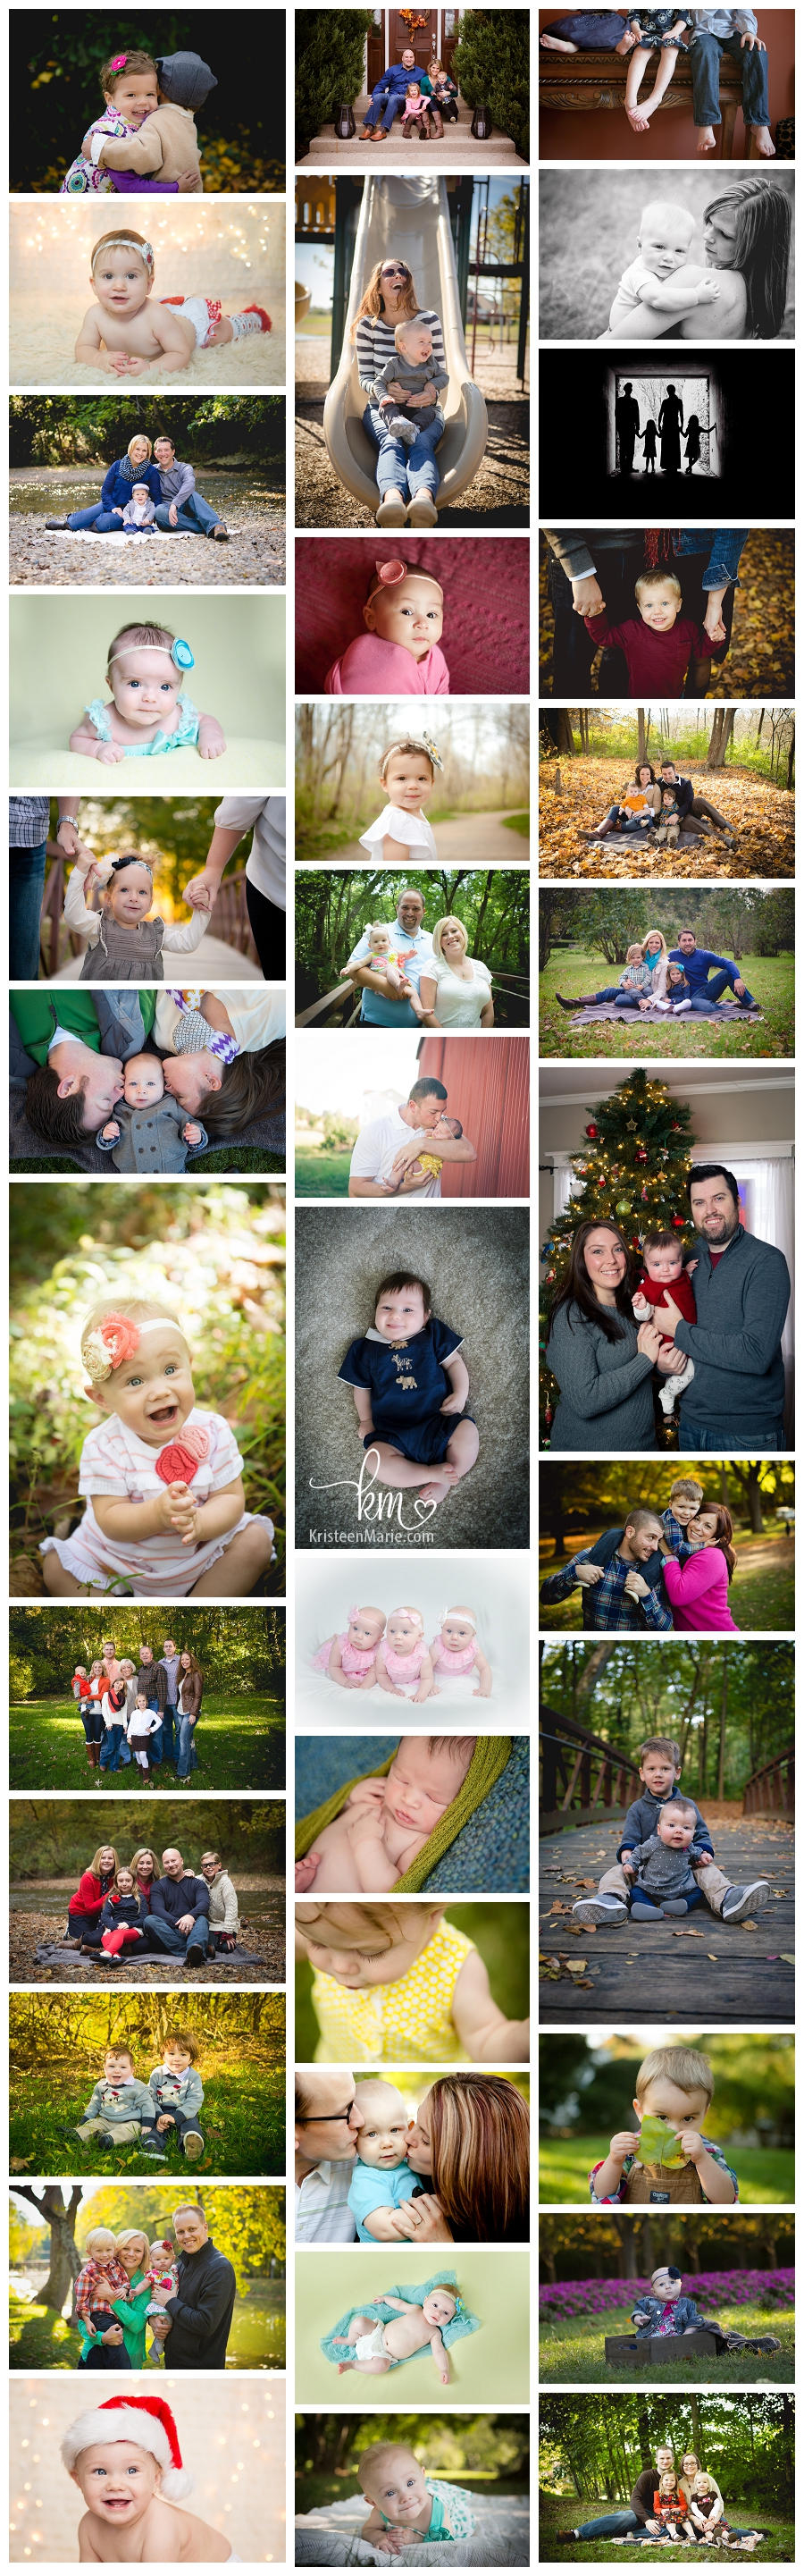 Family photography in Indianapolis